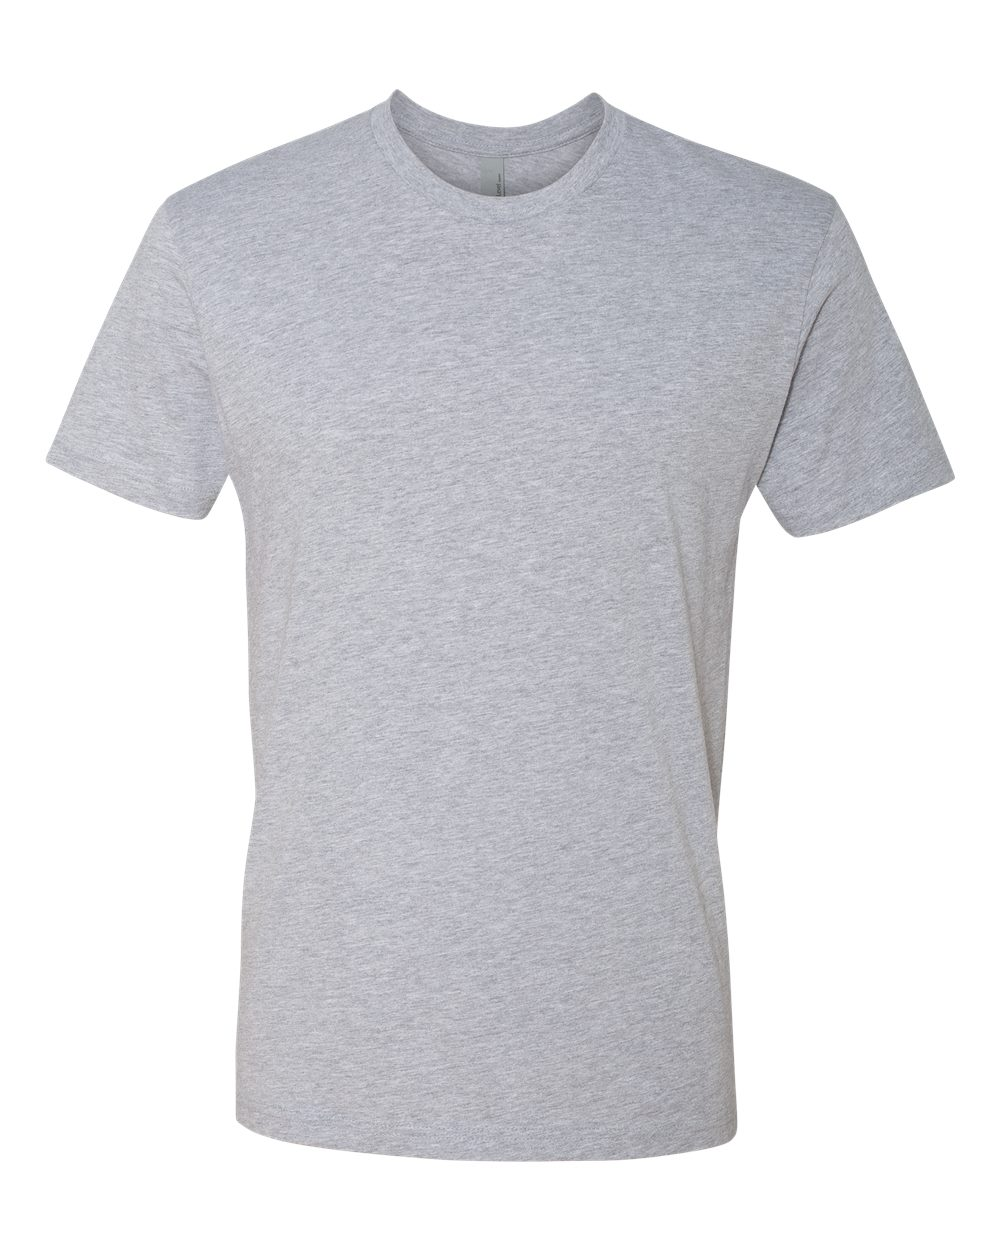 Next_Level_3600_Heather_Grey_Front_High.jpg